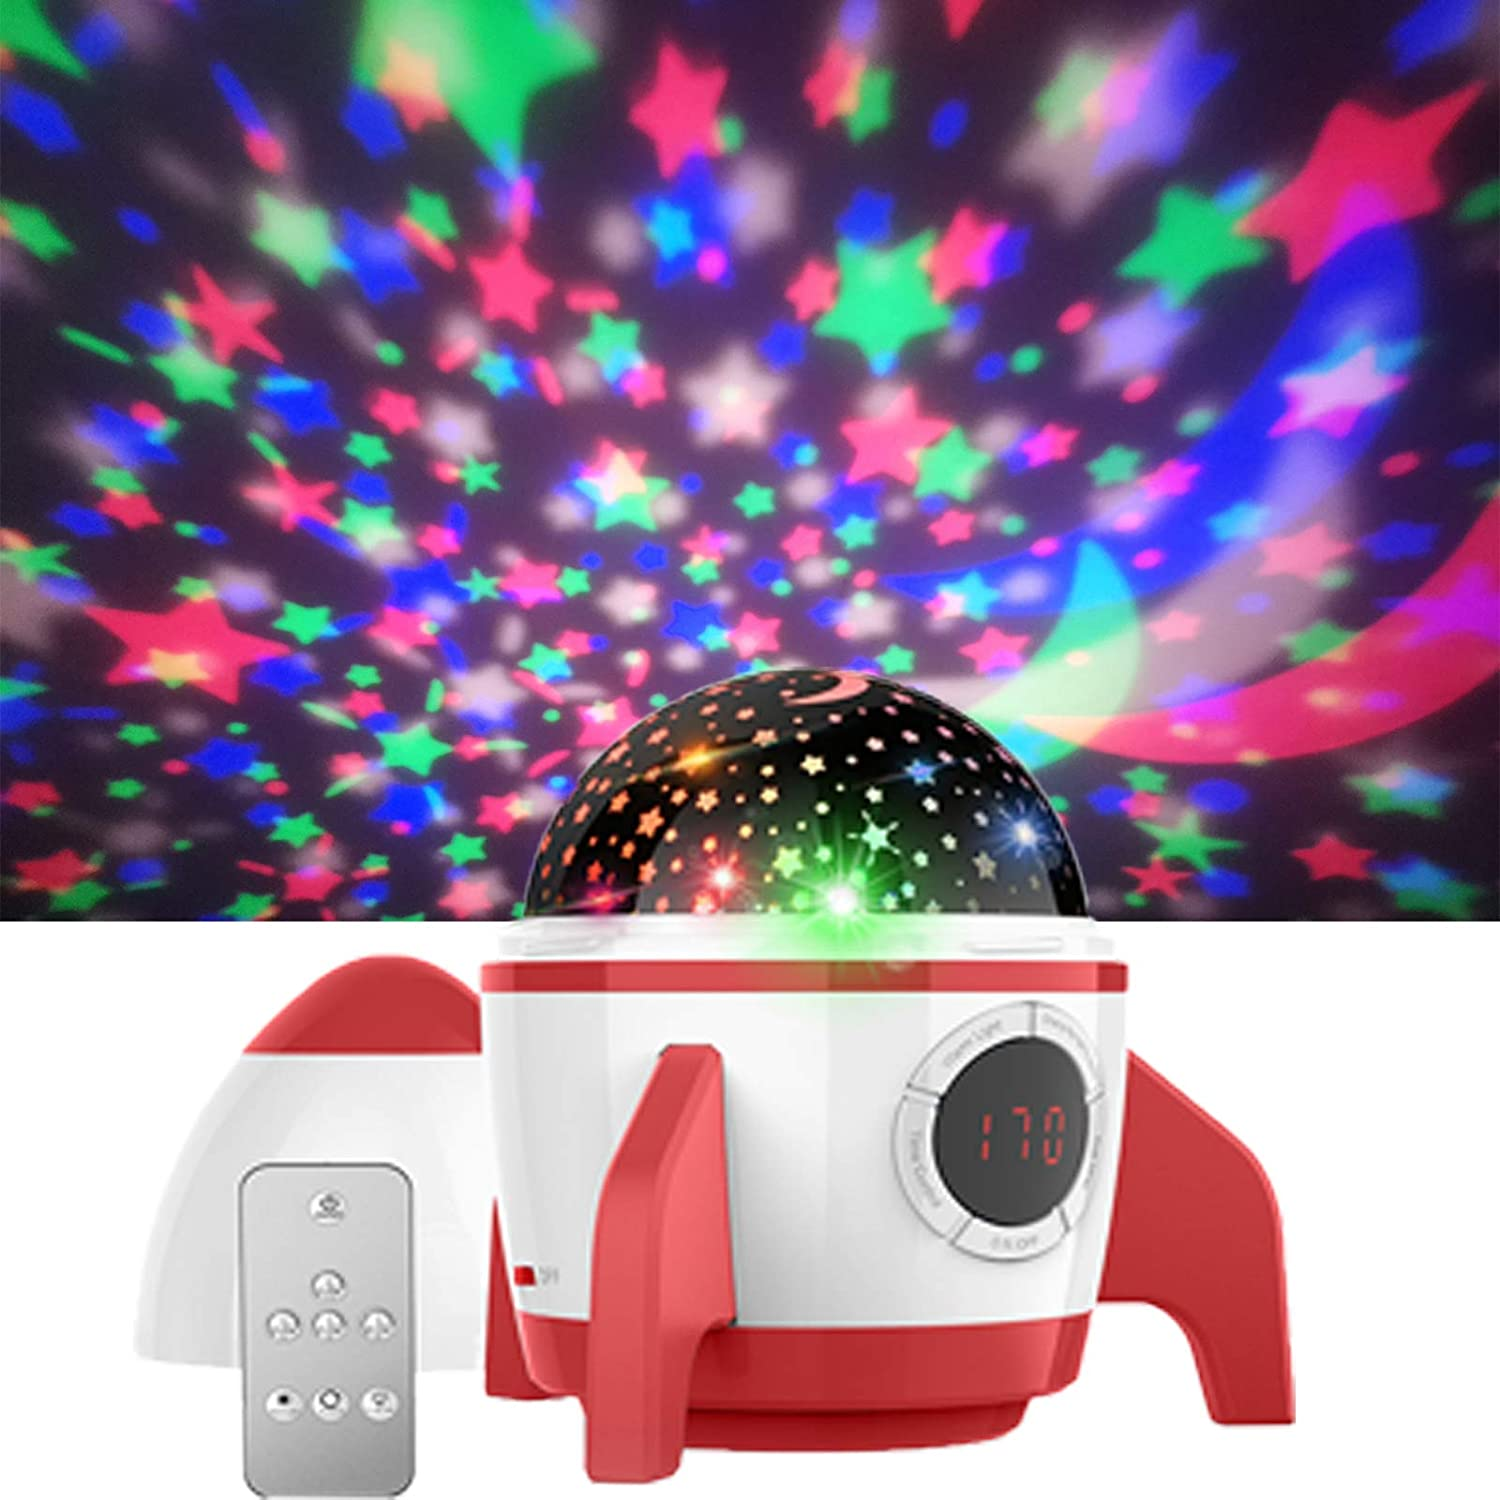 Star Night Light Projector Kids, Night Sky Projector Led Projector Lights Kids Star Projector Ceiling Led Light Bedroom Projector Gifts for 1-12 Years Old Boys and Girls Gifts for Christmas(Red)